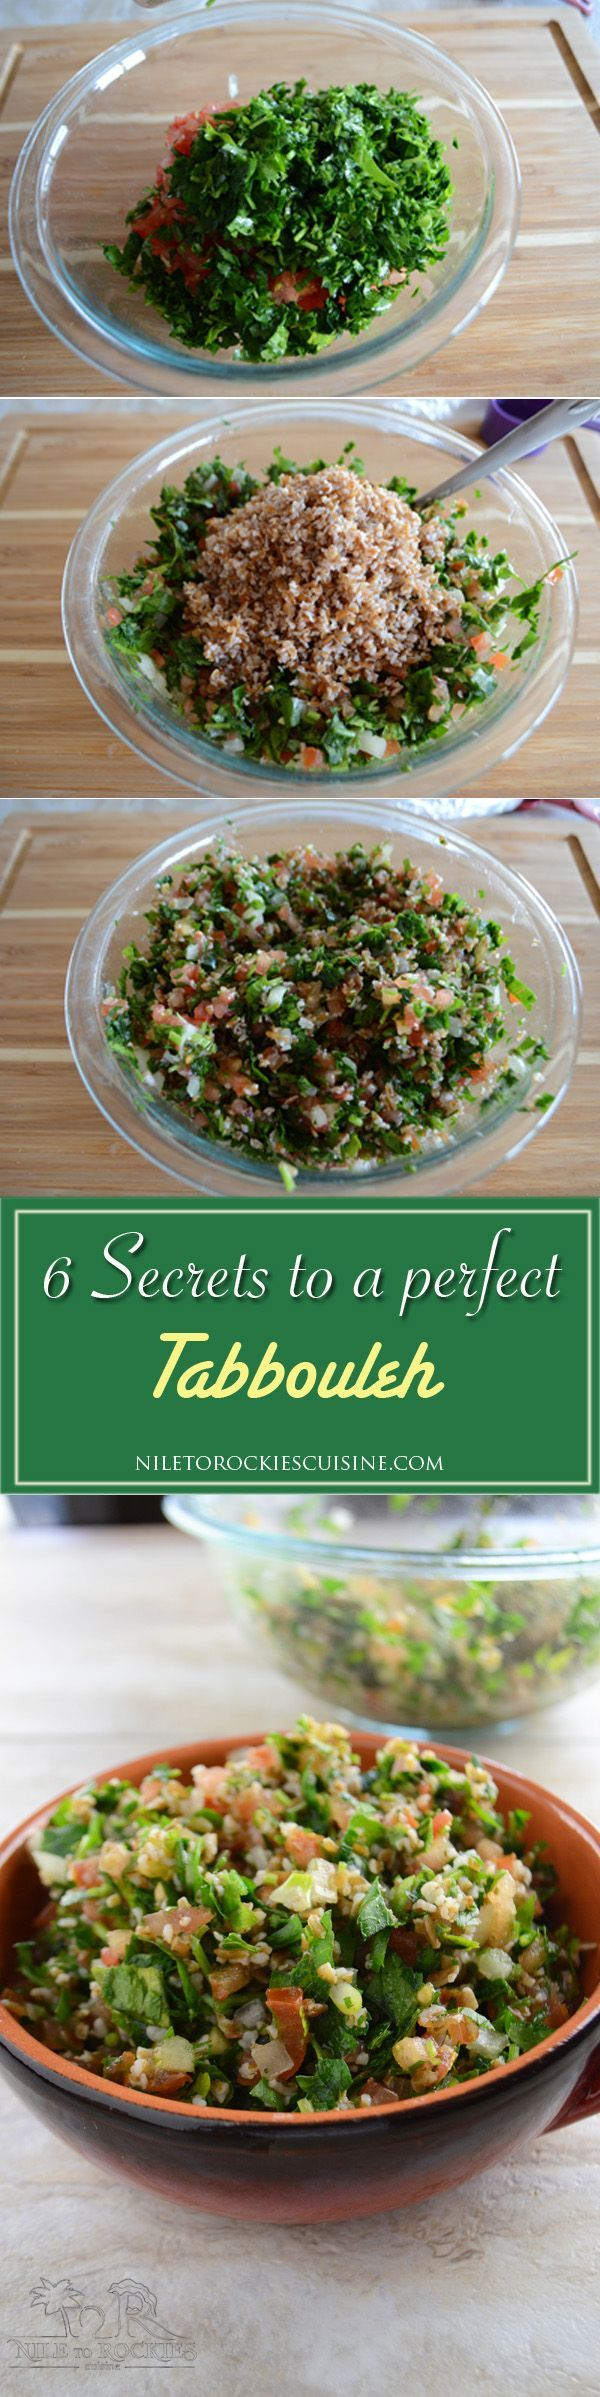 Tabbouleh, is probably the most famous recipe in the Lebanese cuisine. As many says, tabbouleh is a labor of love as it requires a LOT of time in the kitchen to finely chop ingredients to perfection. I know there are probably hundreds if not thousands of recipes out there for tabbouleh salad, so what makes mine different, it came from the heart and soul of a Lebanese friend who is very angry  at what is happening to the Lebanese tabbouleh...